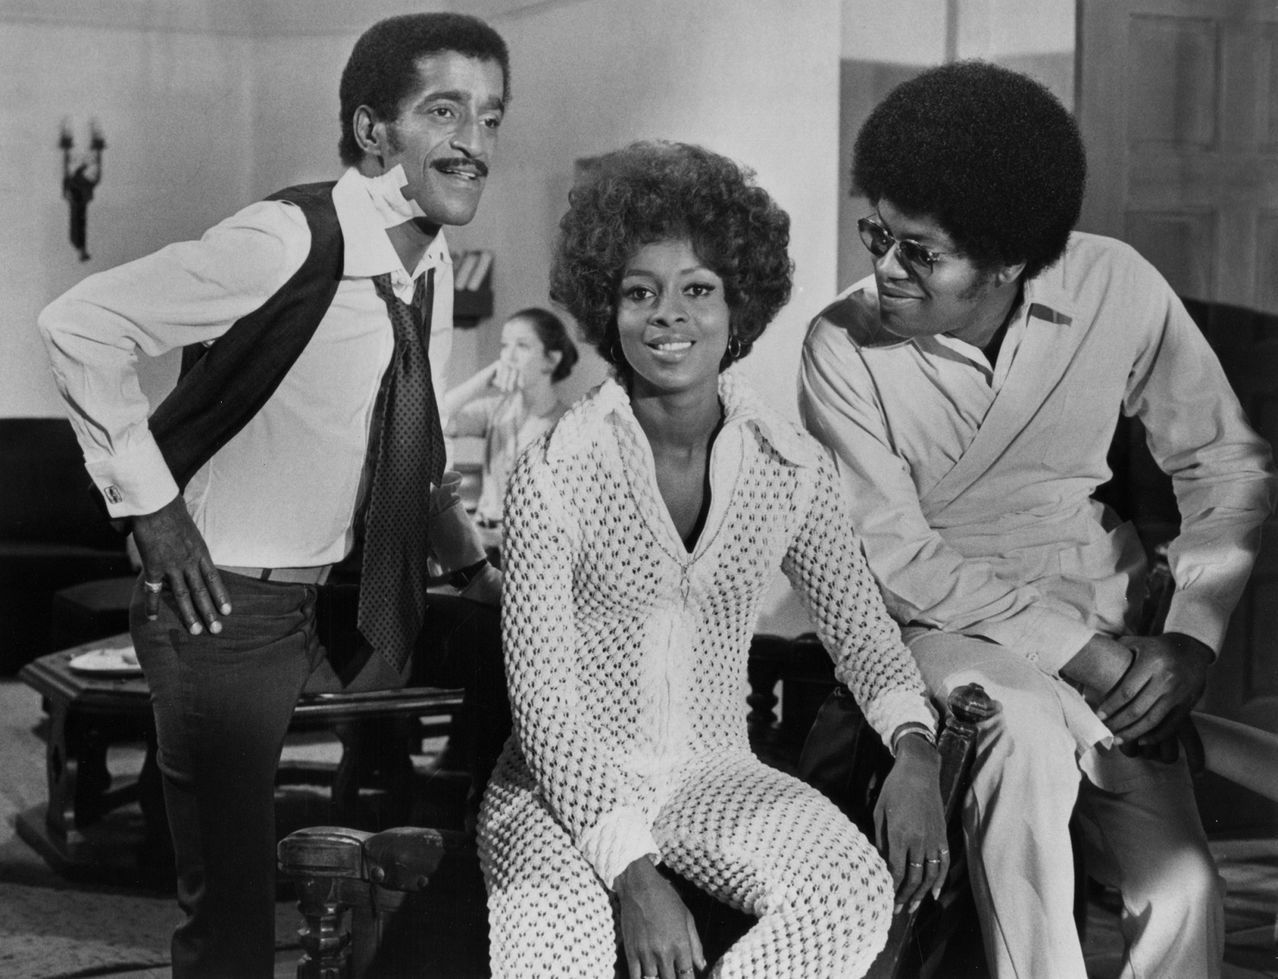 Images Of Lola Falana Minimalist sammy davis, jr. and lola falana | lola falana | pinterest